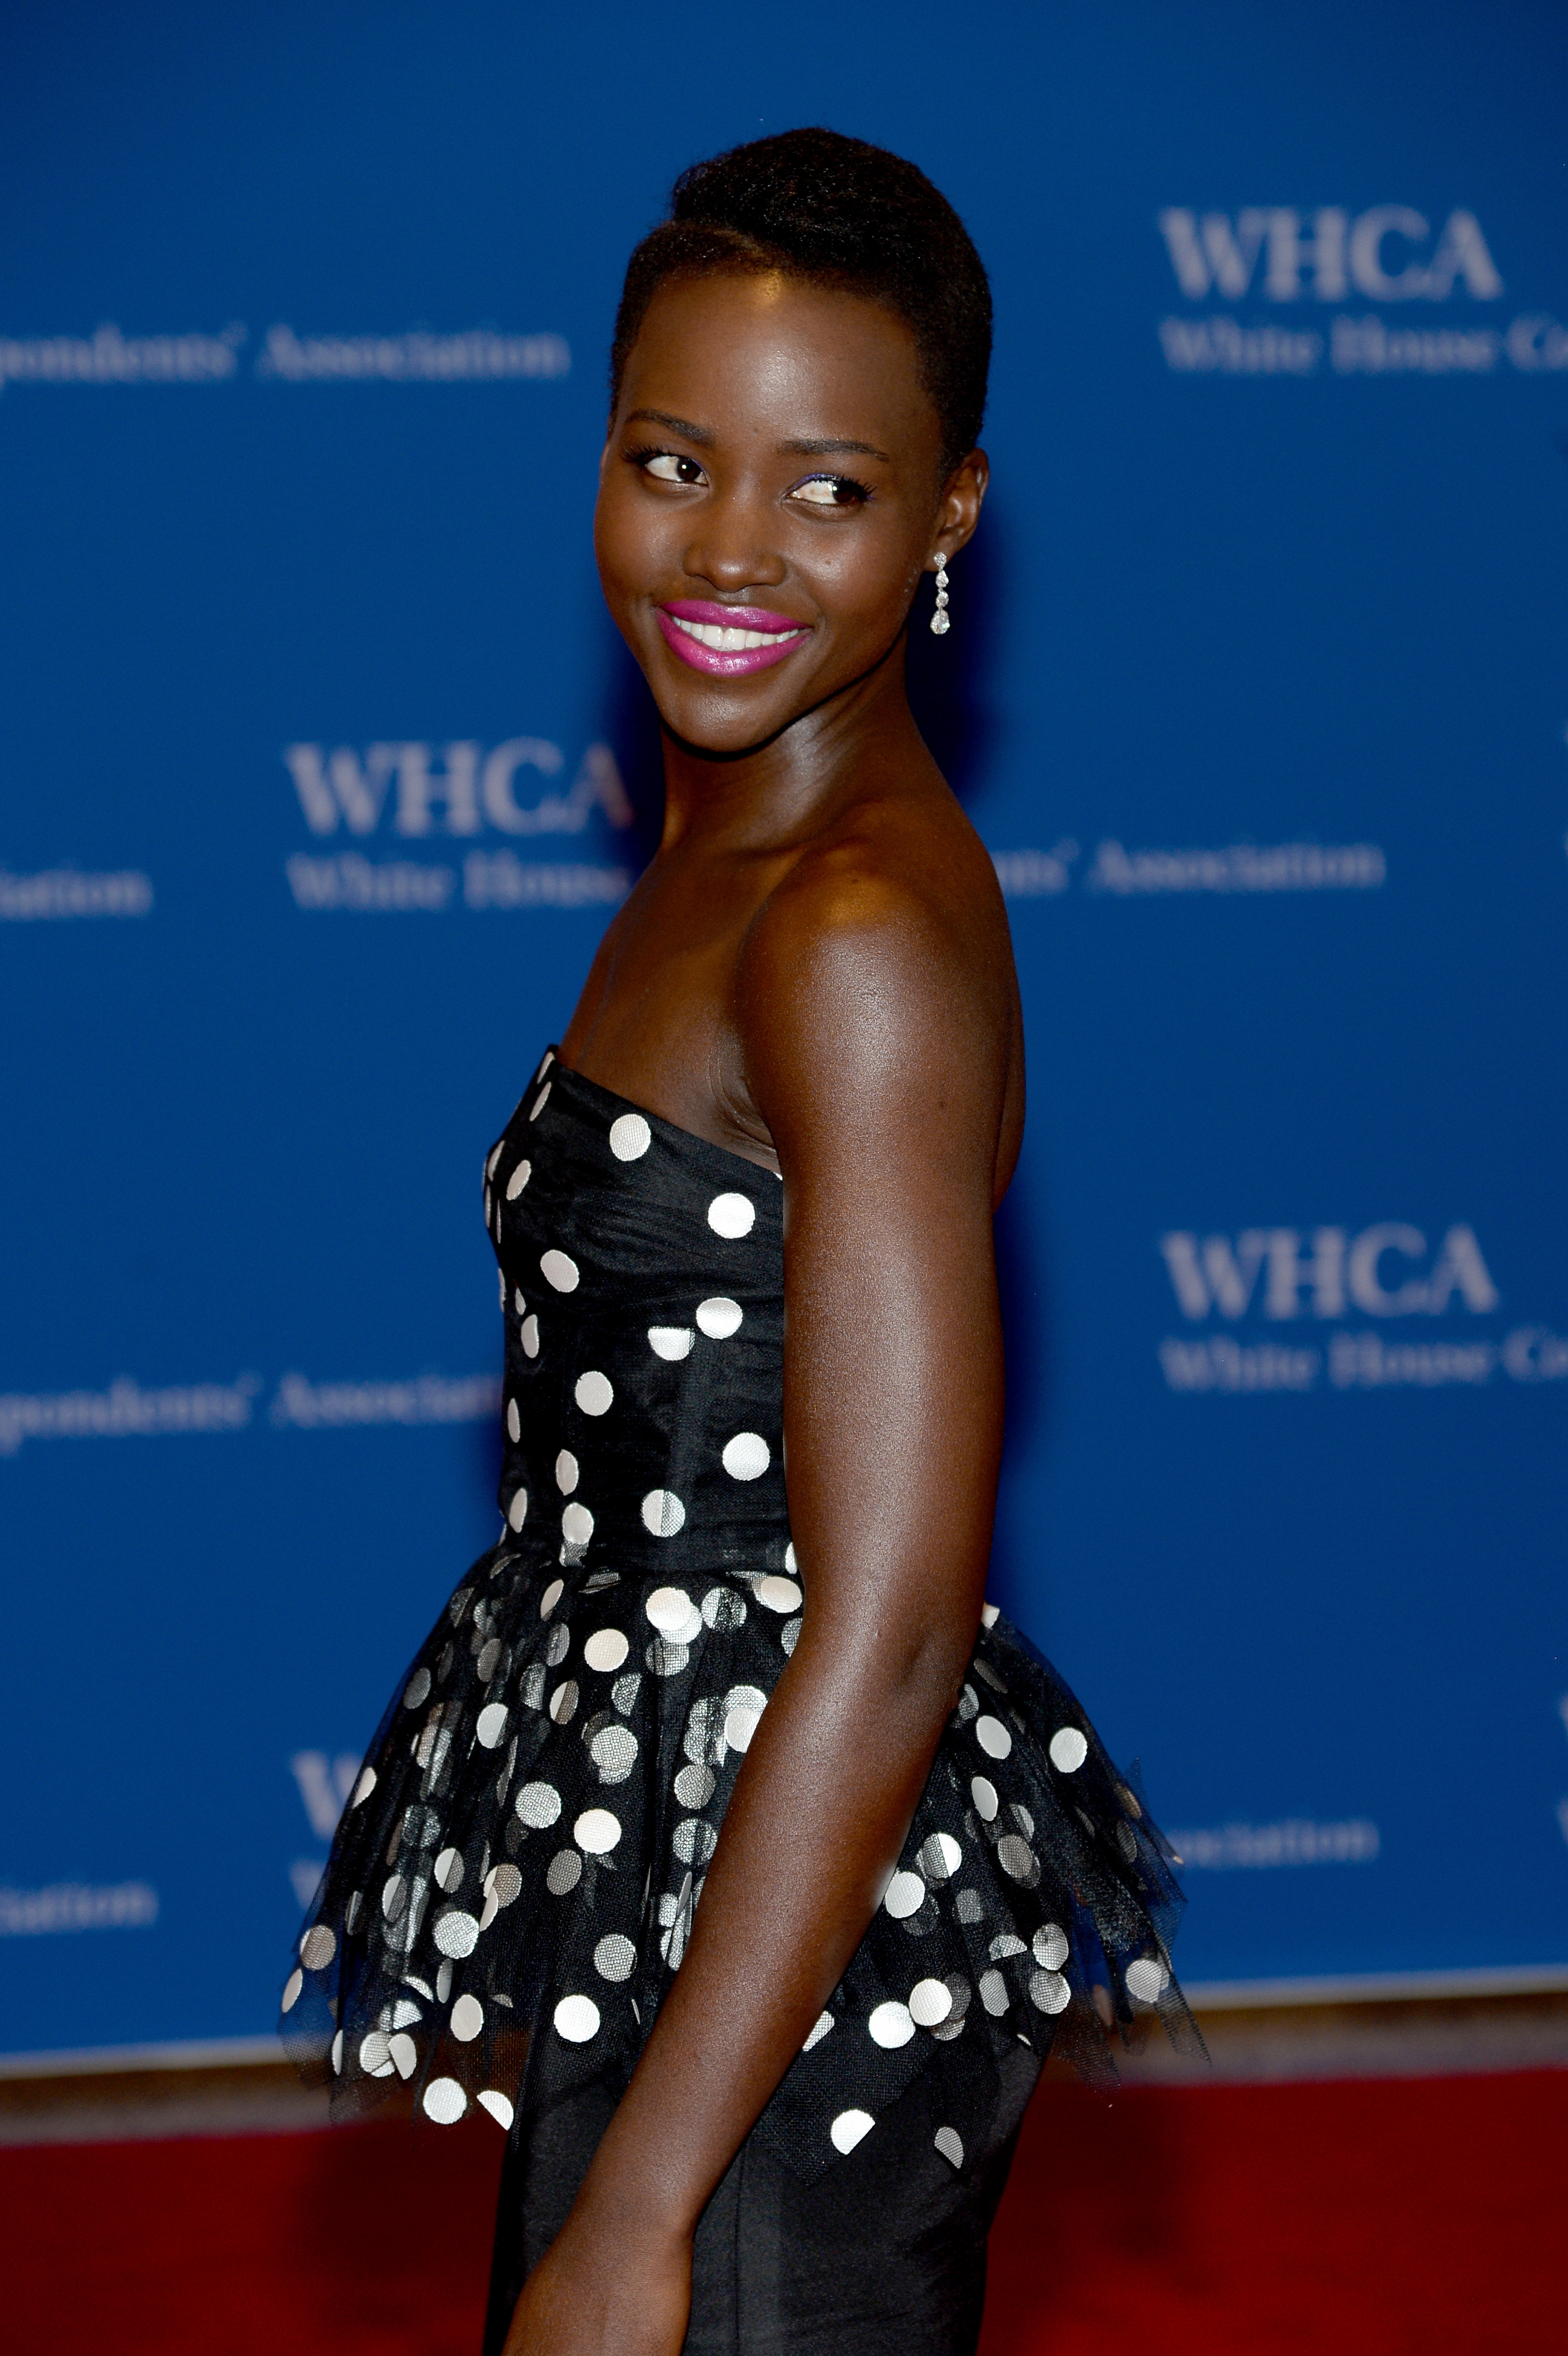 WASHINGTON, DC - MAY 03: Actress Lupita Nyong'o attends the 100th Annual White House Correspondents' Association Dinner at the Washington Hilton on May 3, 2014 in Washington, DC. (Photo by Dimitrios Kambouris/Getty Images)